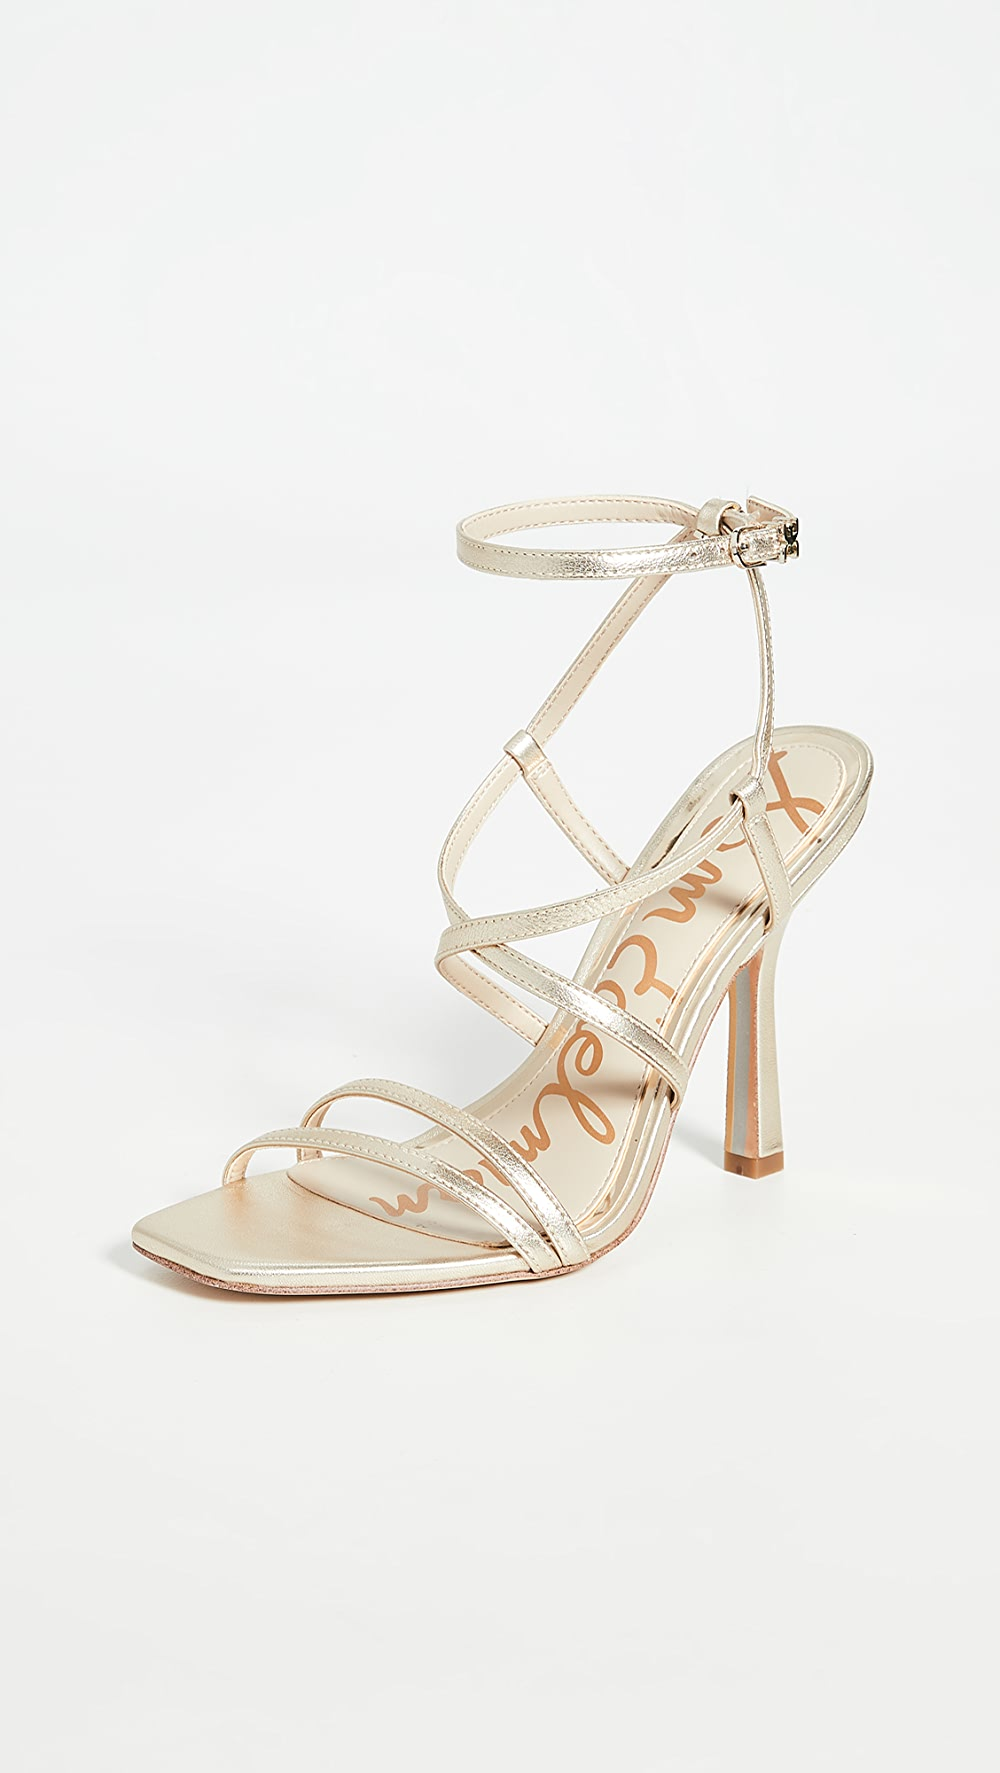 Just Sam Edelman - Leeanne Sandals Great Varieties